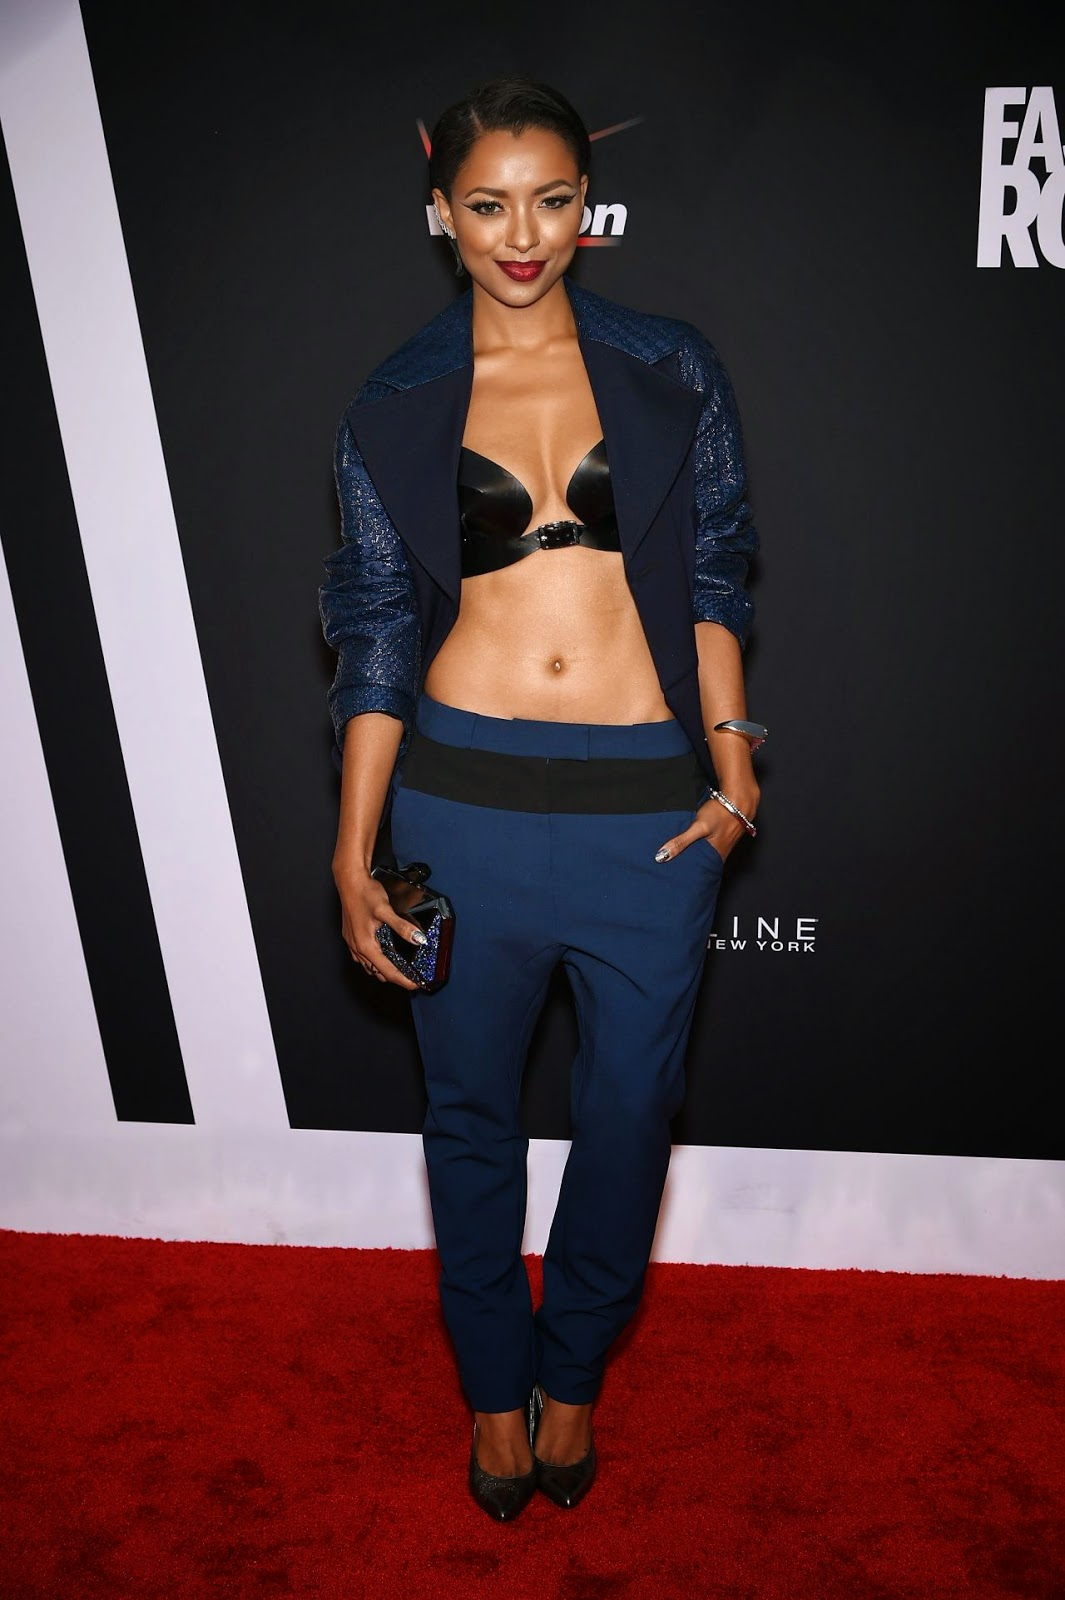 Kat Graham exposes her Zana Bayne leather bra at the 2014 Fashion Rocks